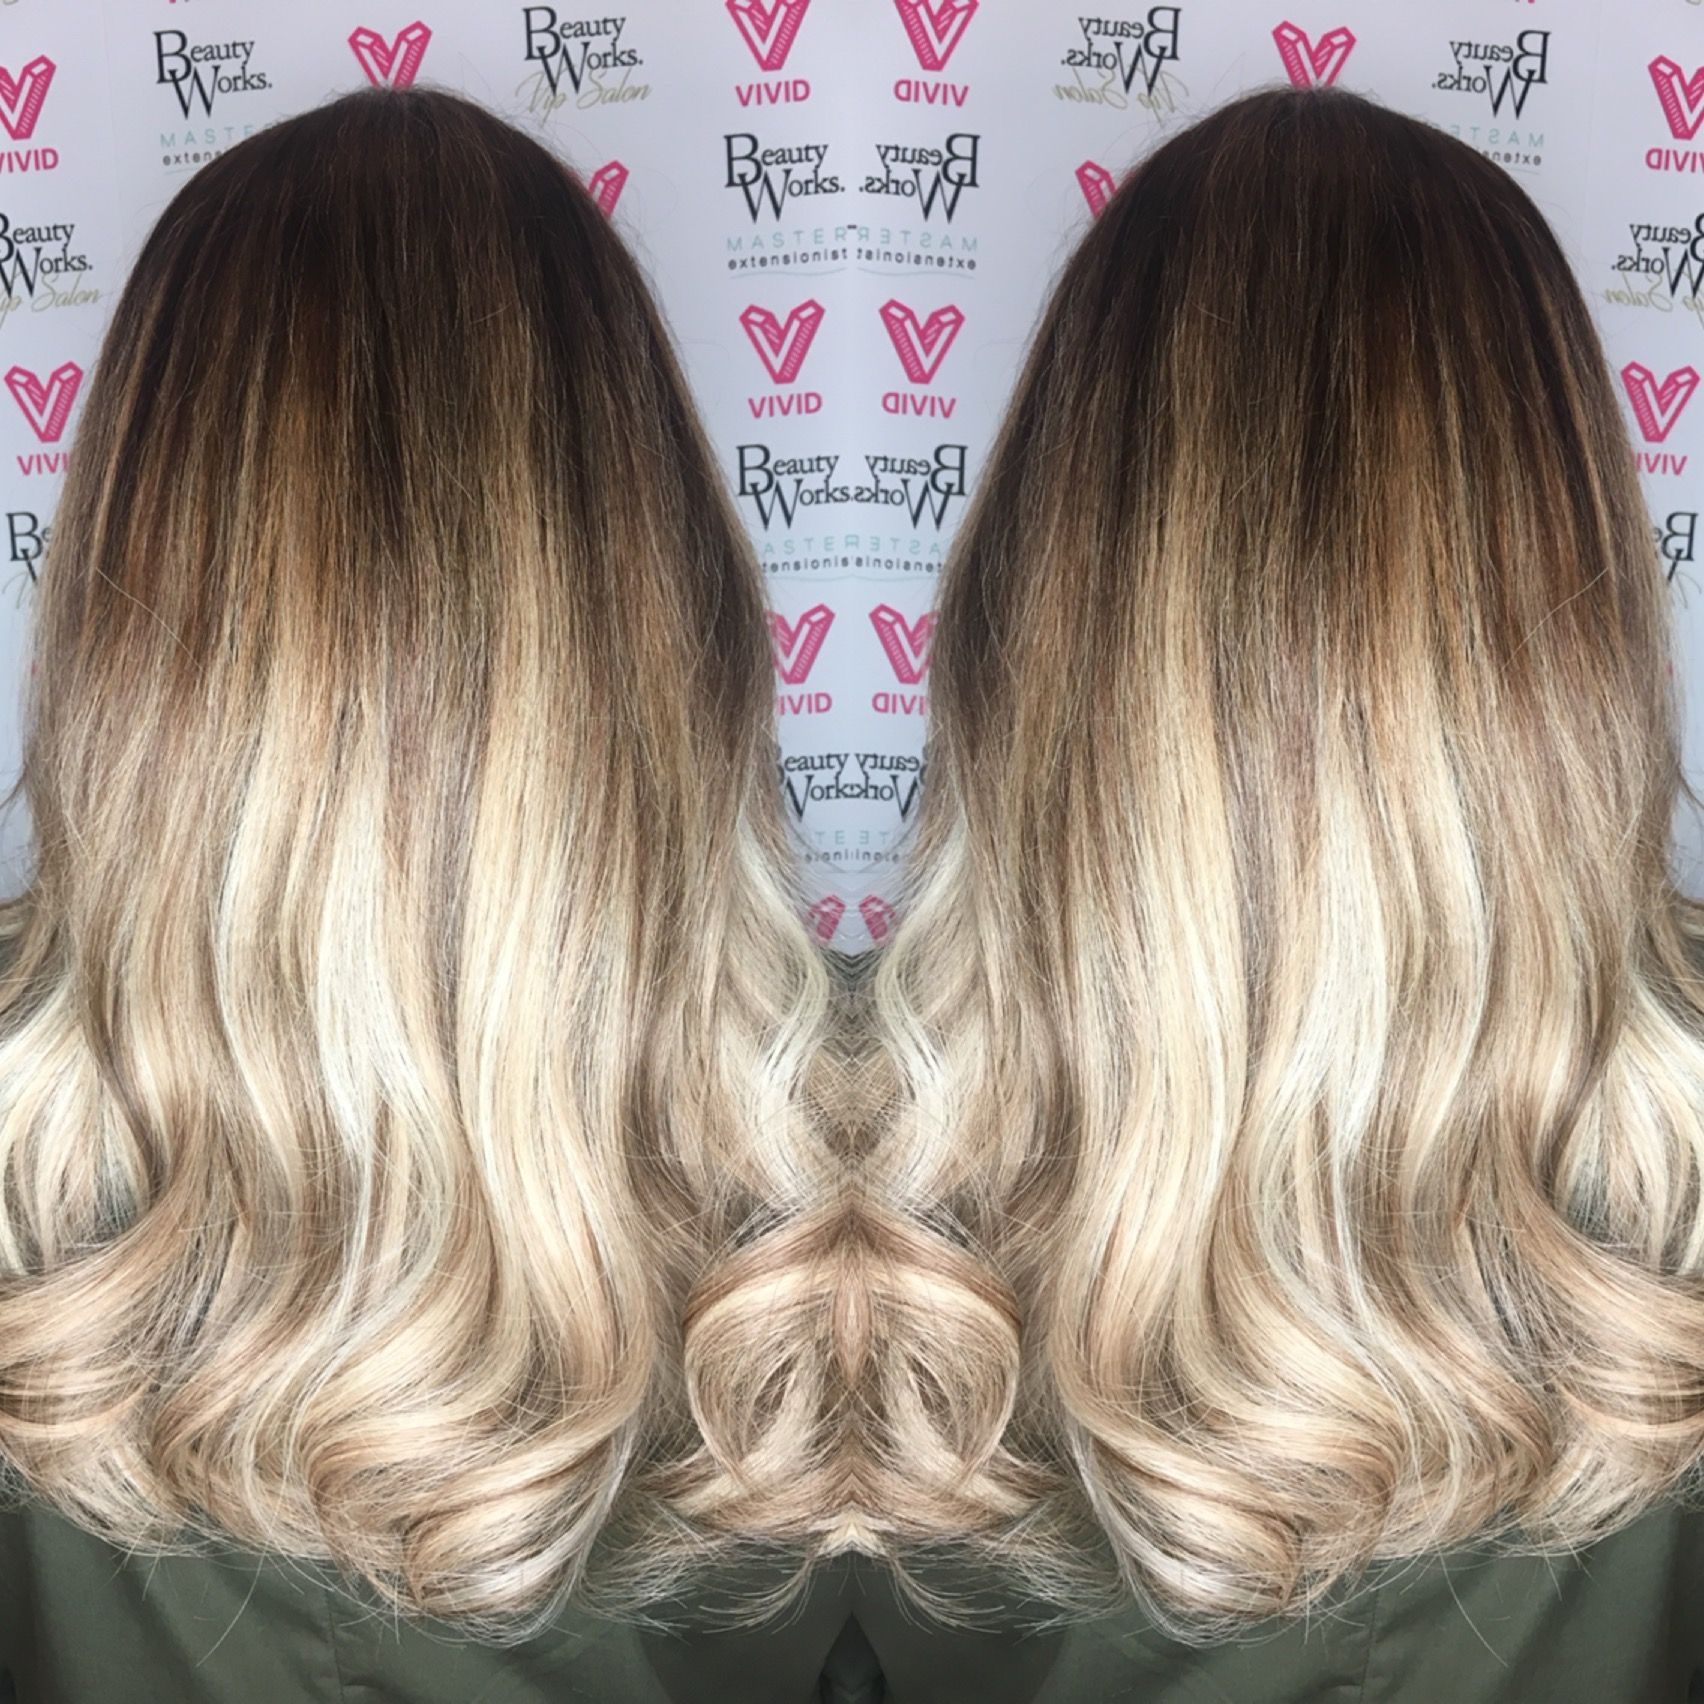 Stunning Soft Golden Blonde Balayage Using Hair Extensions To